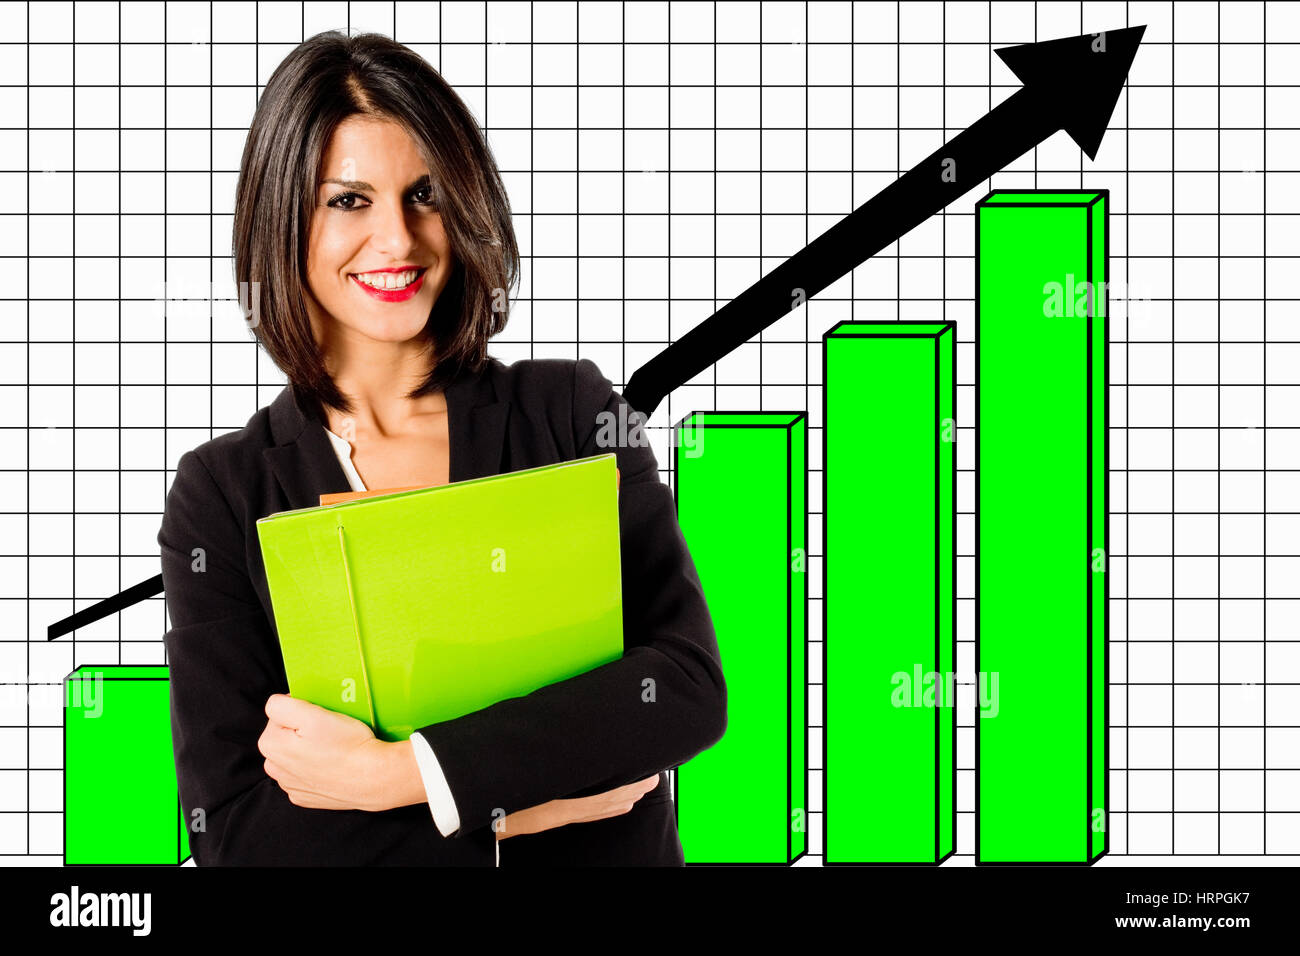 business grouth graph - Stock Image